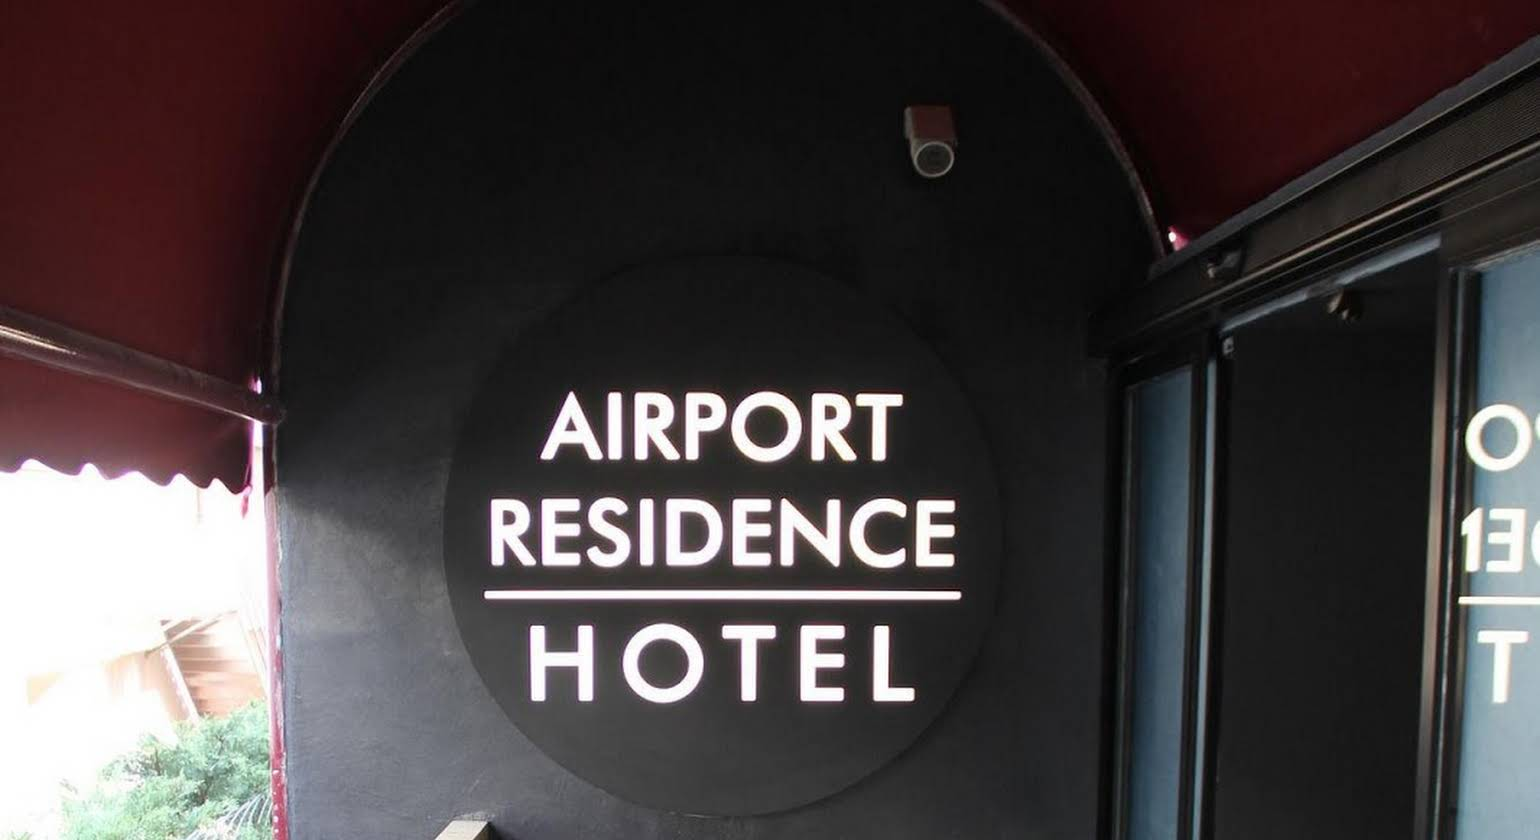 Airport Residence